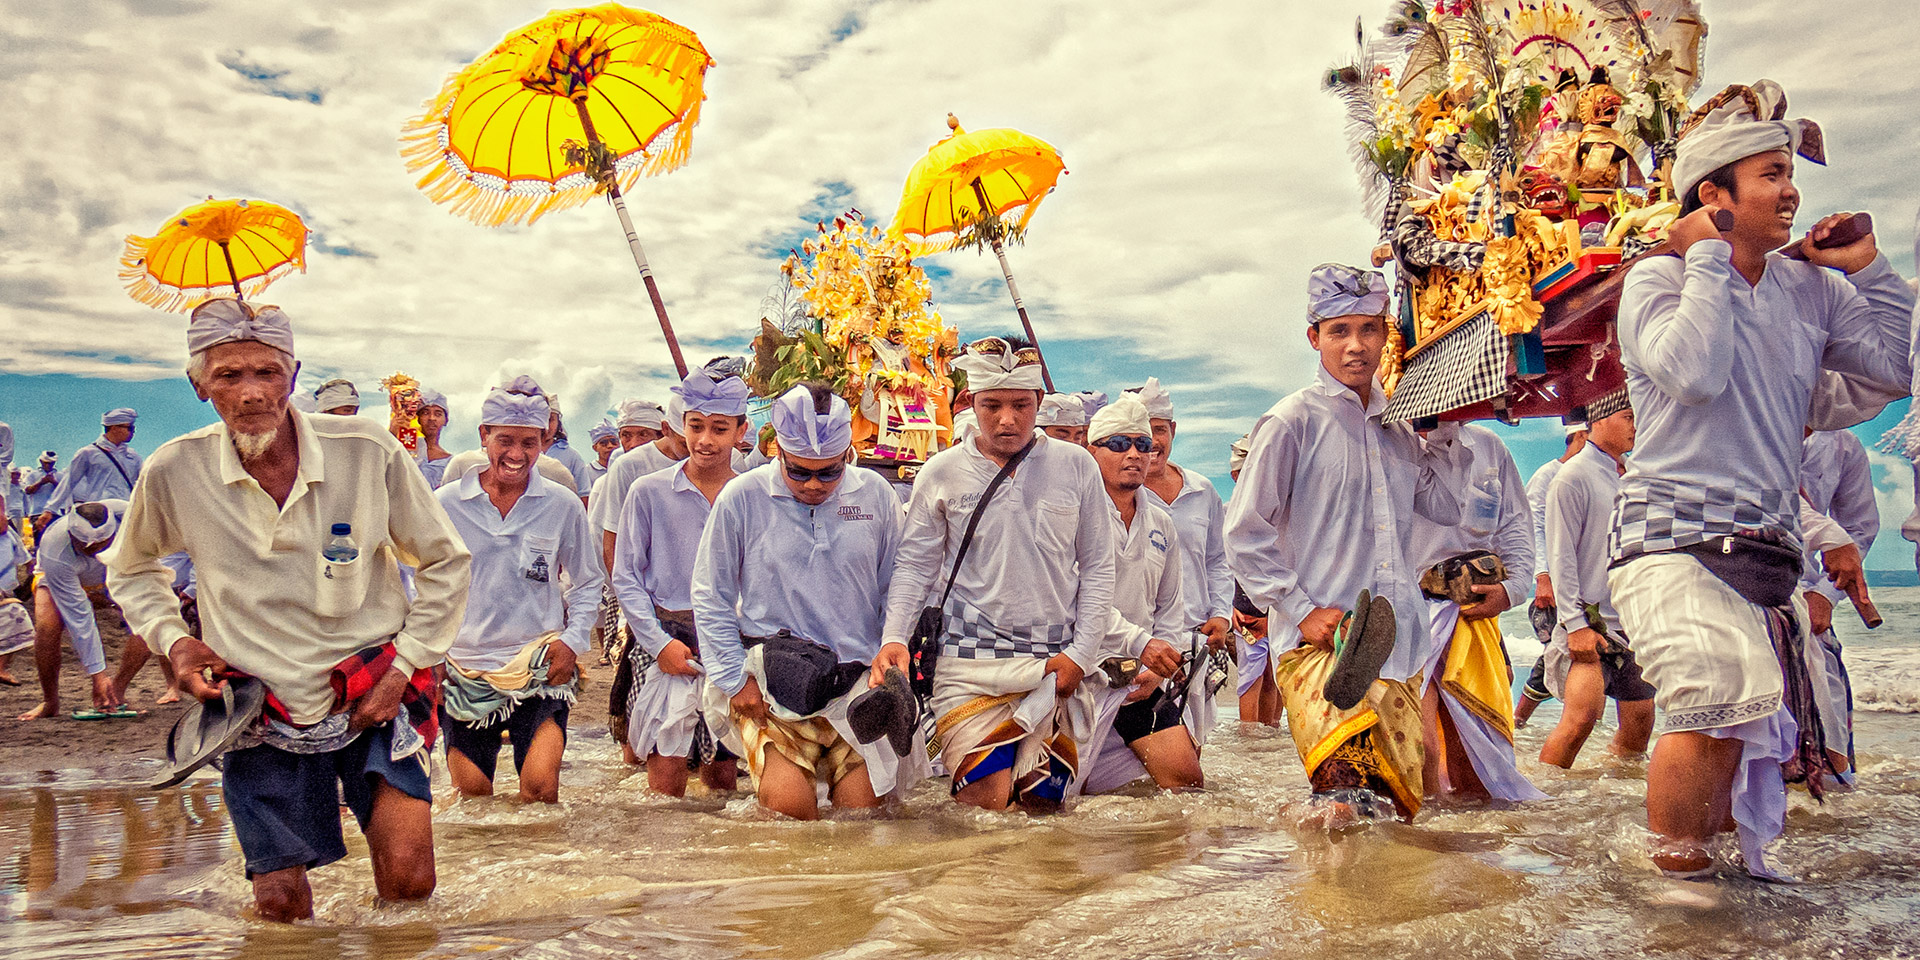 Melasti Celebrations in Bali